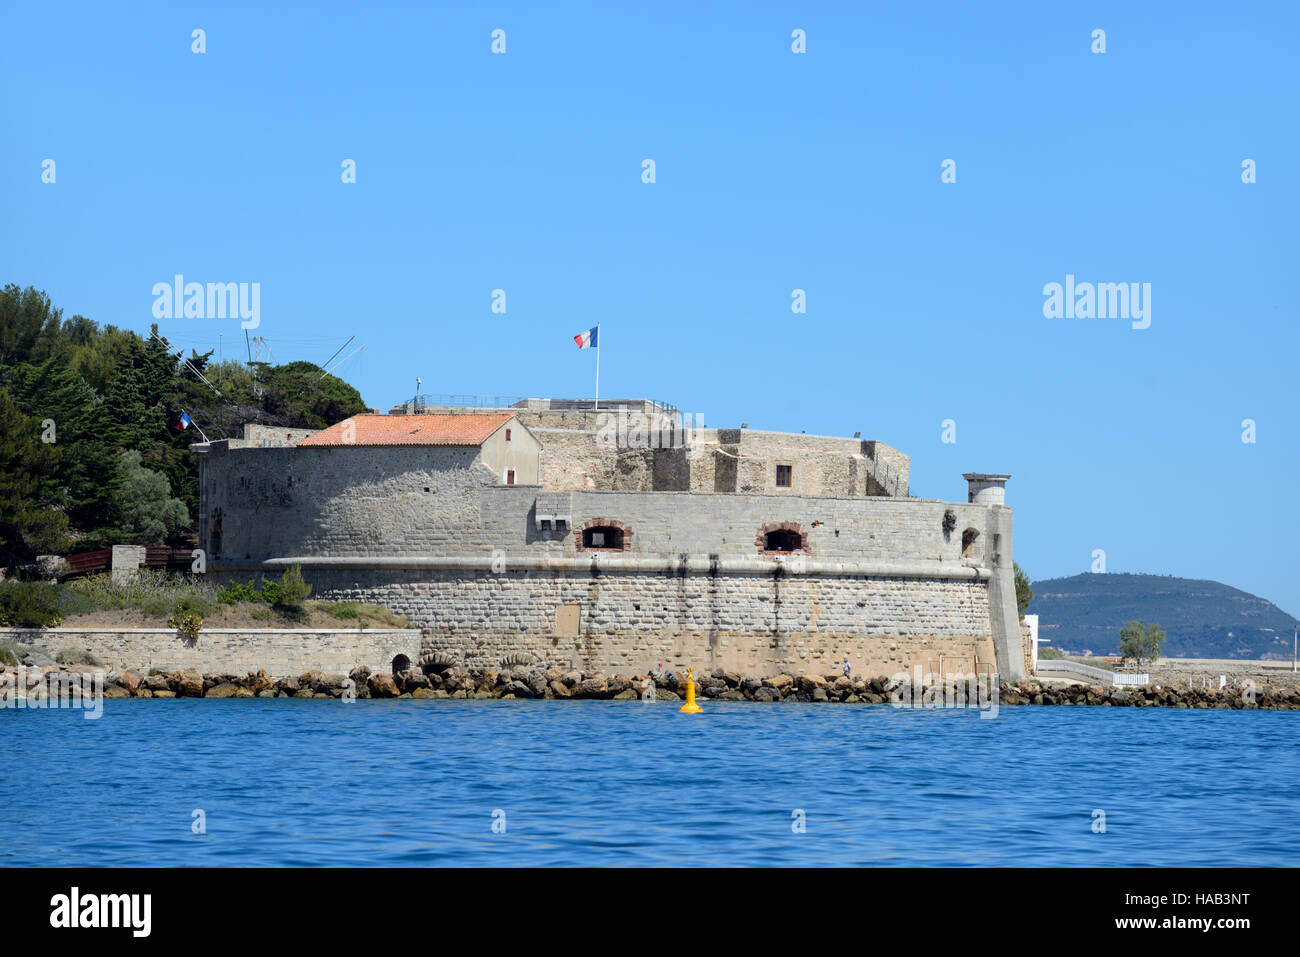 La Tour Royale Fort (1514), one of a Series of Medieval Forts built by Vauban to Protect Toulon - Stock Image